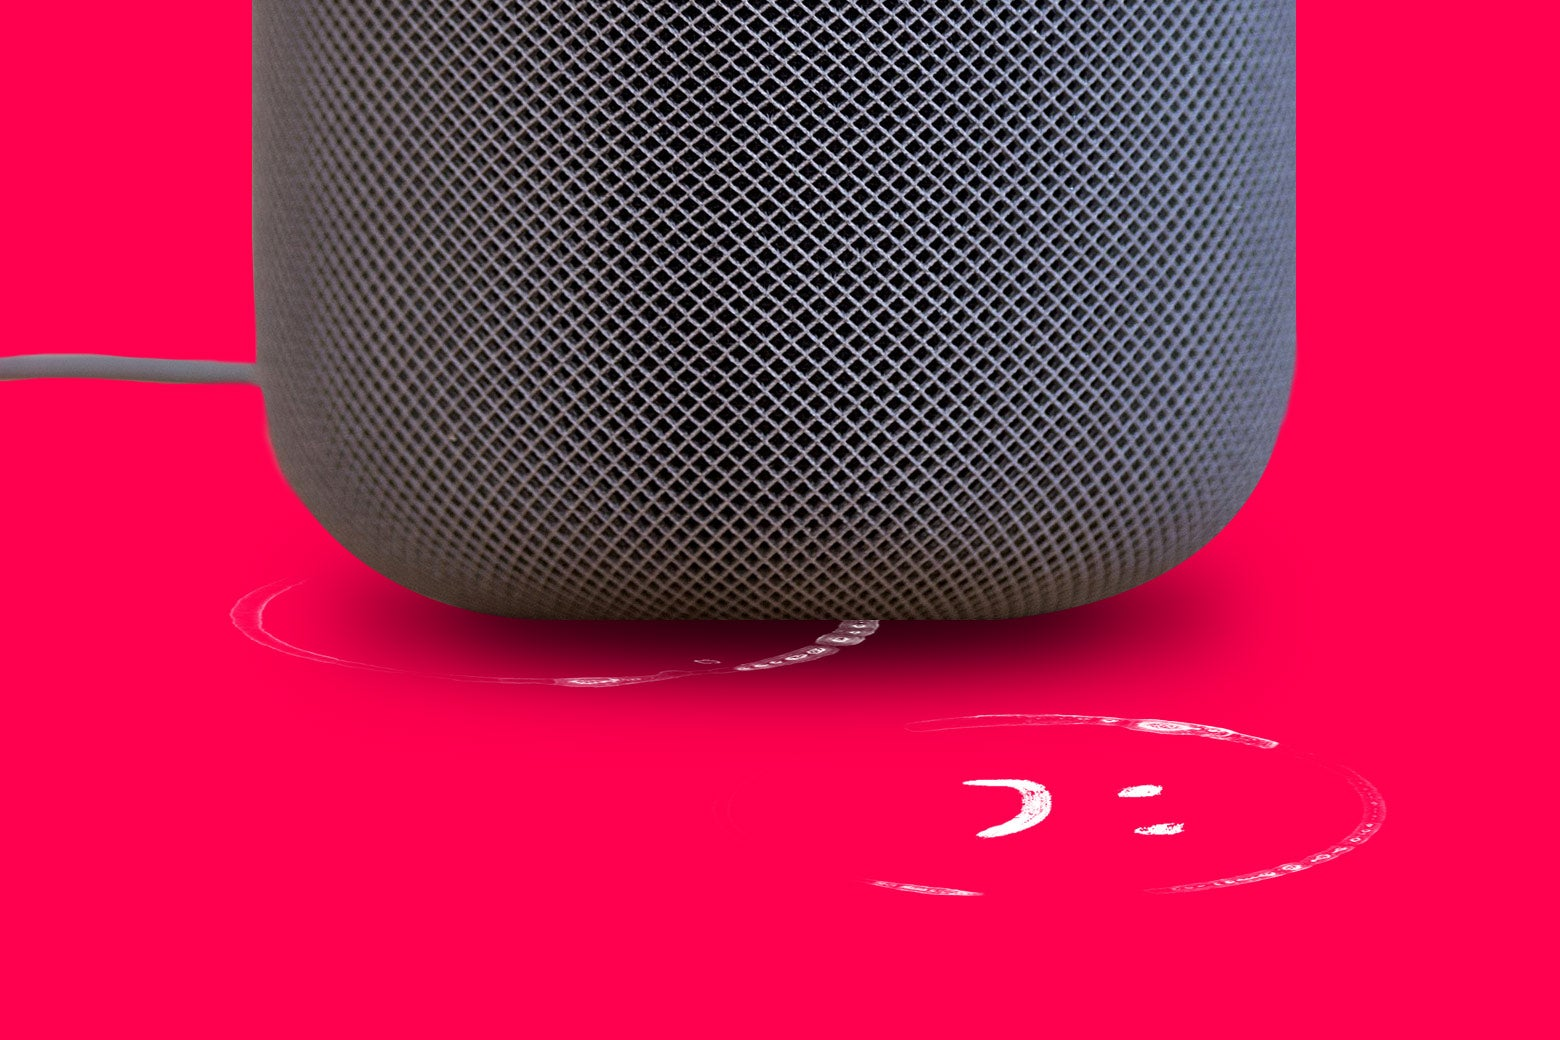 Apple HomePod speakers are leaving marks on some surfaces.